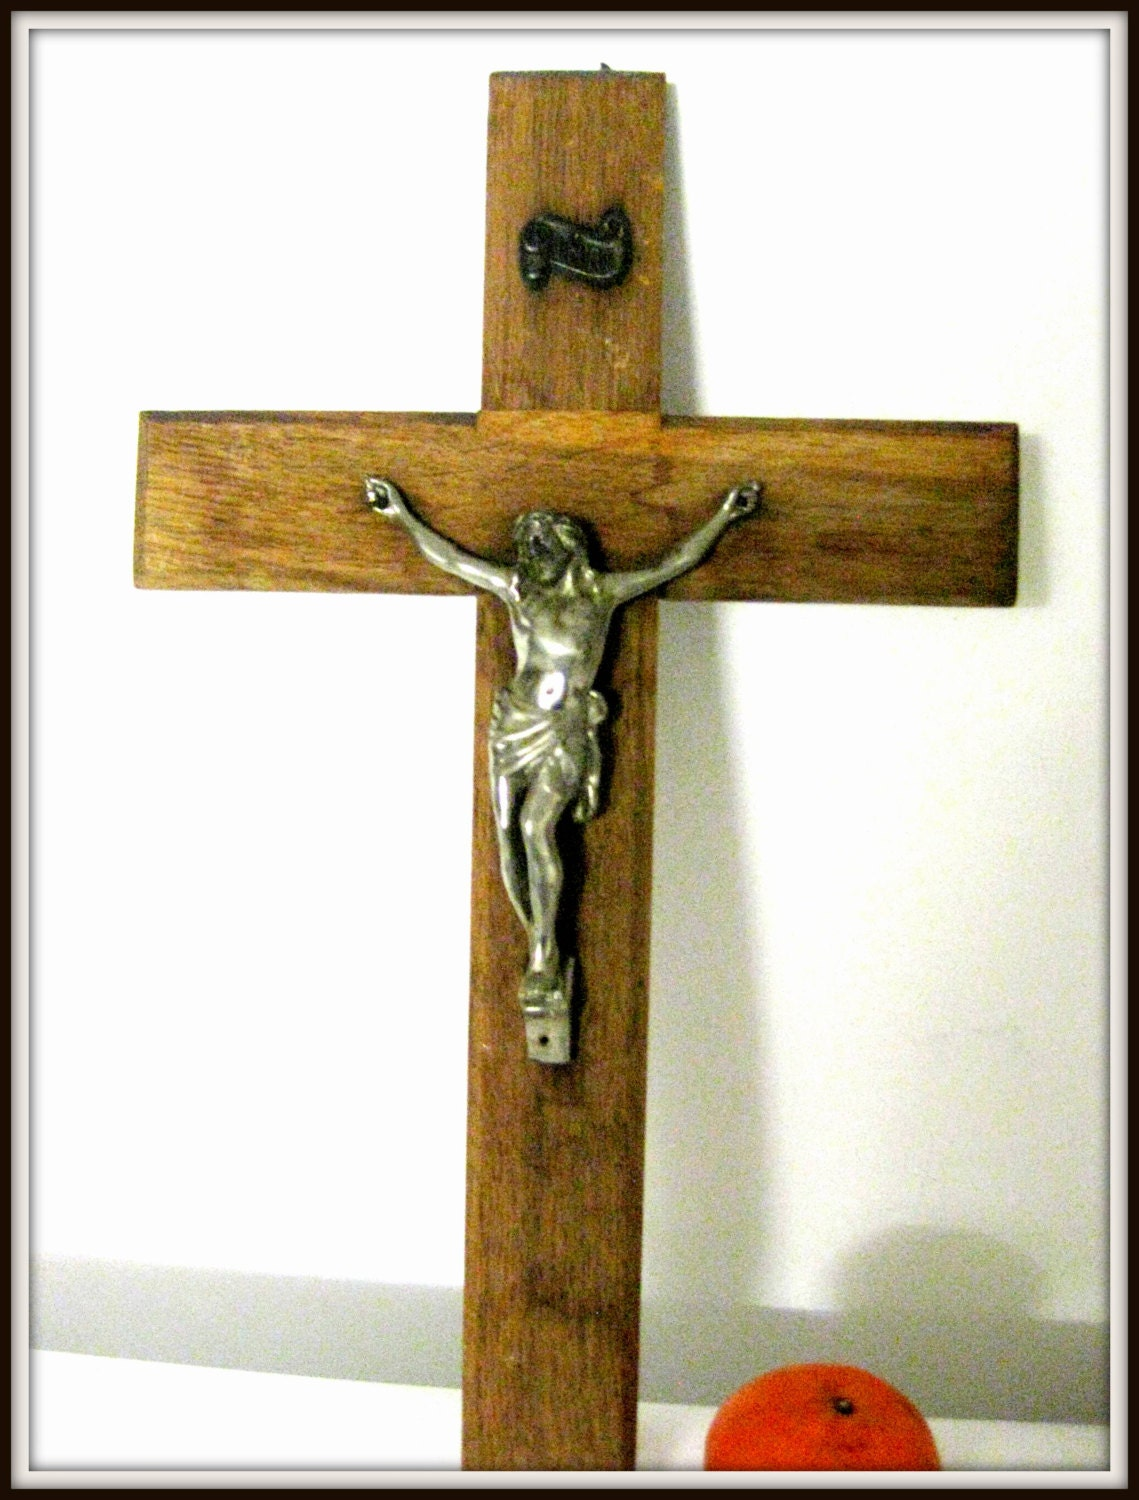 Wall Decor Jesus : Primitive cross antique old religious wall decor art crucifix